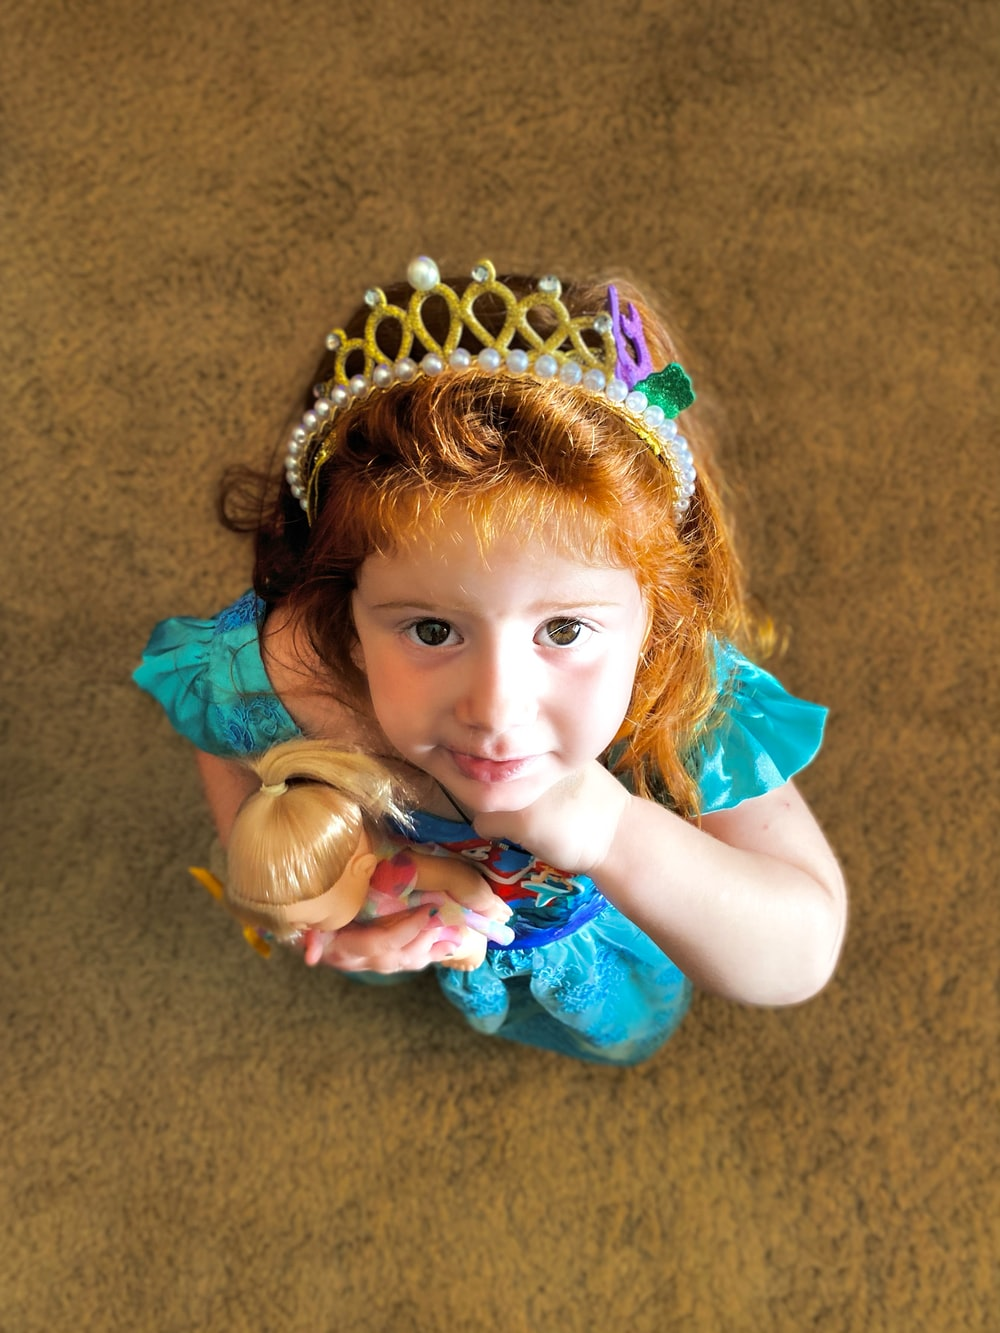 girl in teal sleeveless dress with gold crown